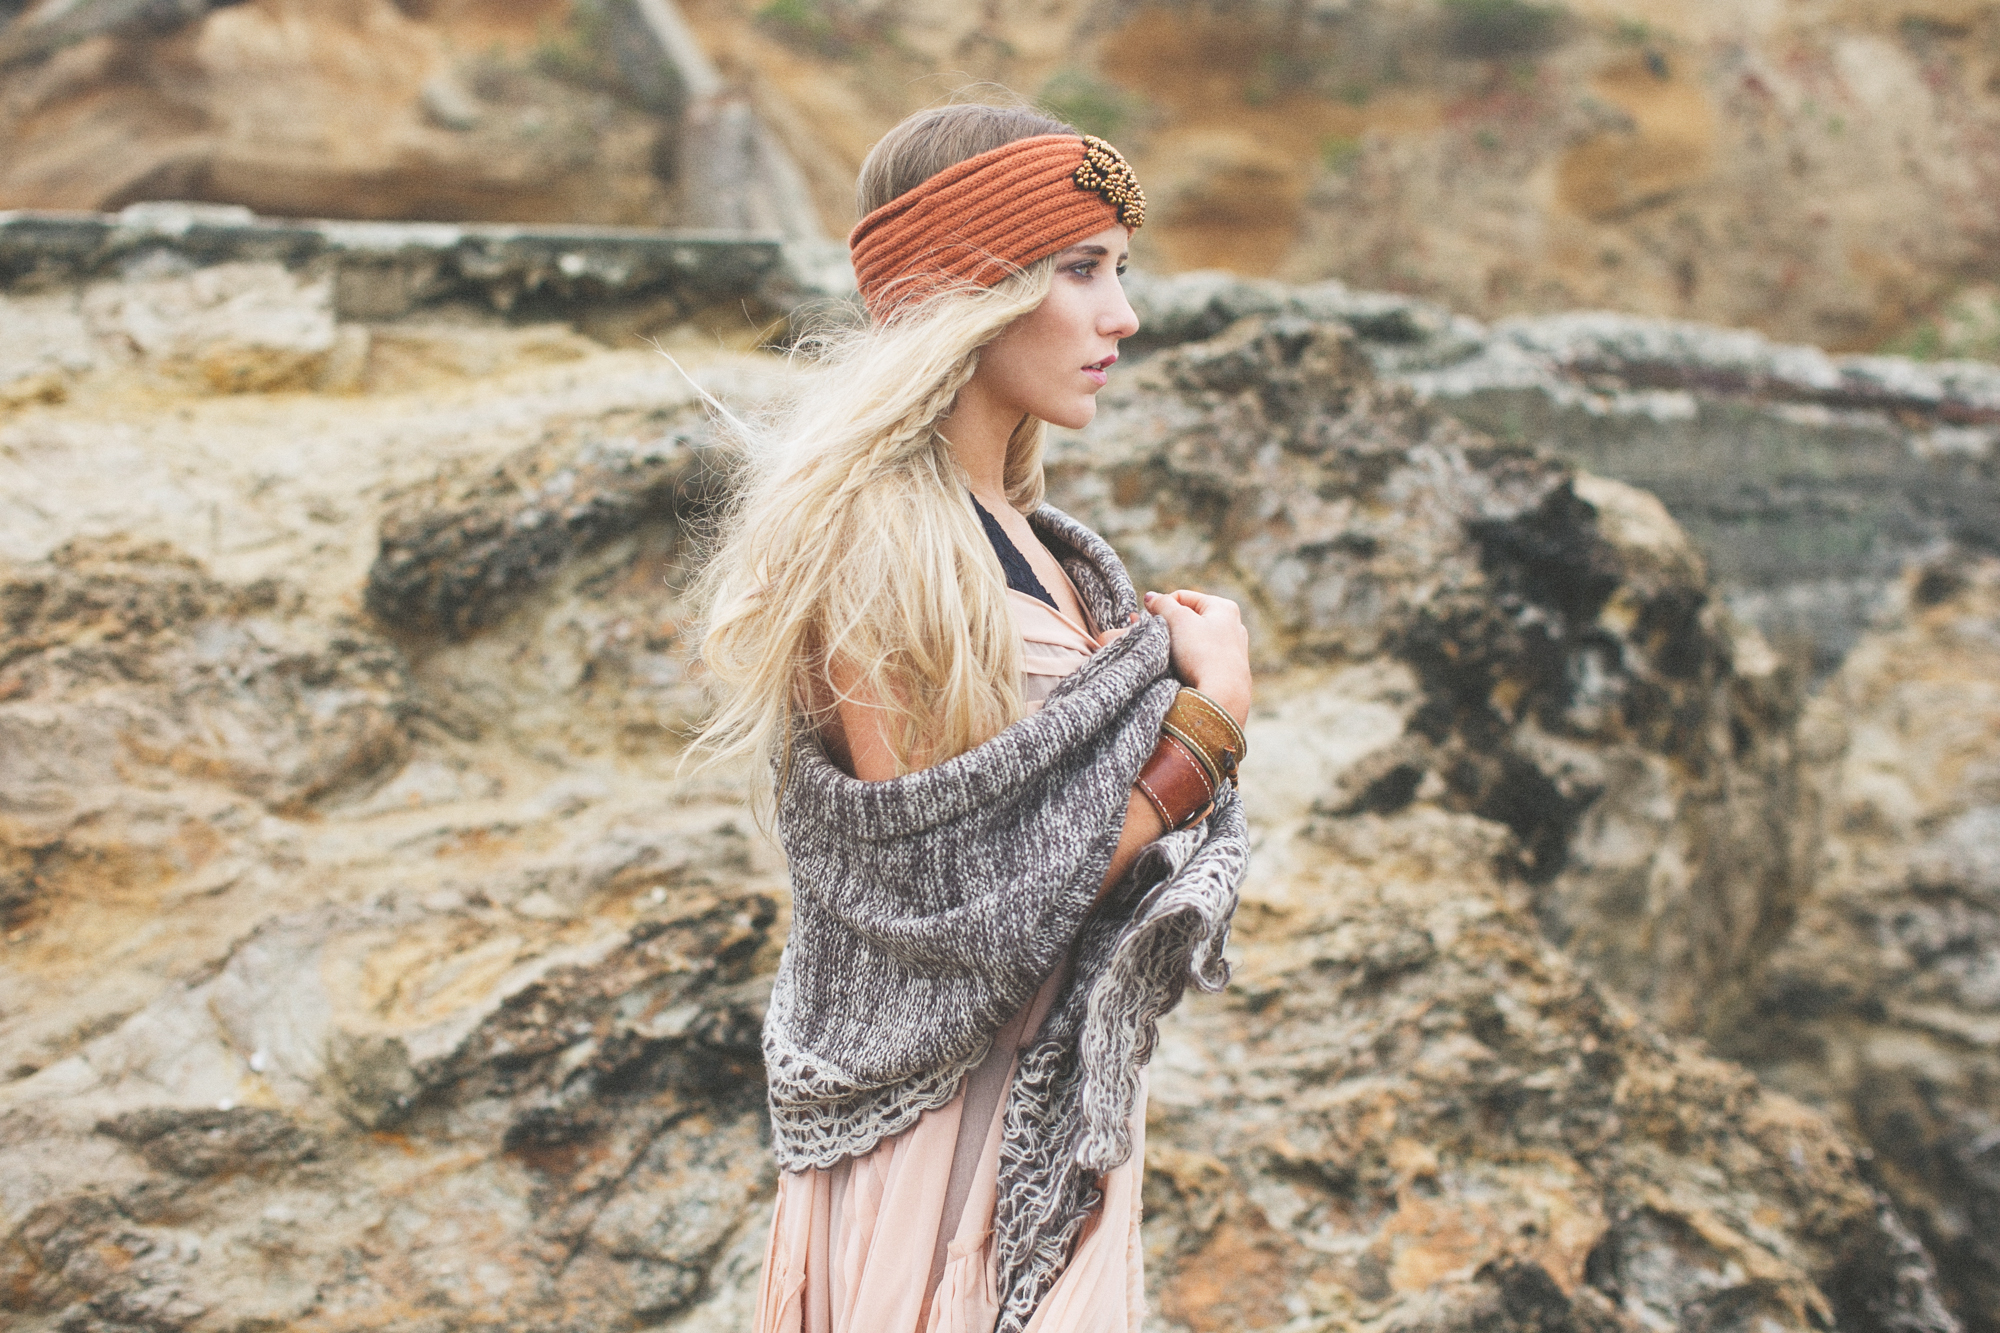 Fashion Photographer, Jennifer Skog's ethereal lands end indie fashion shoot for Three Bird Nest